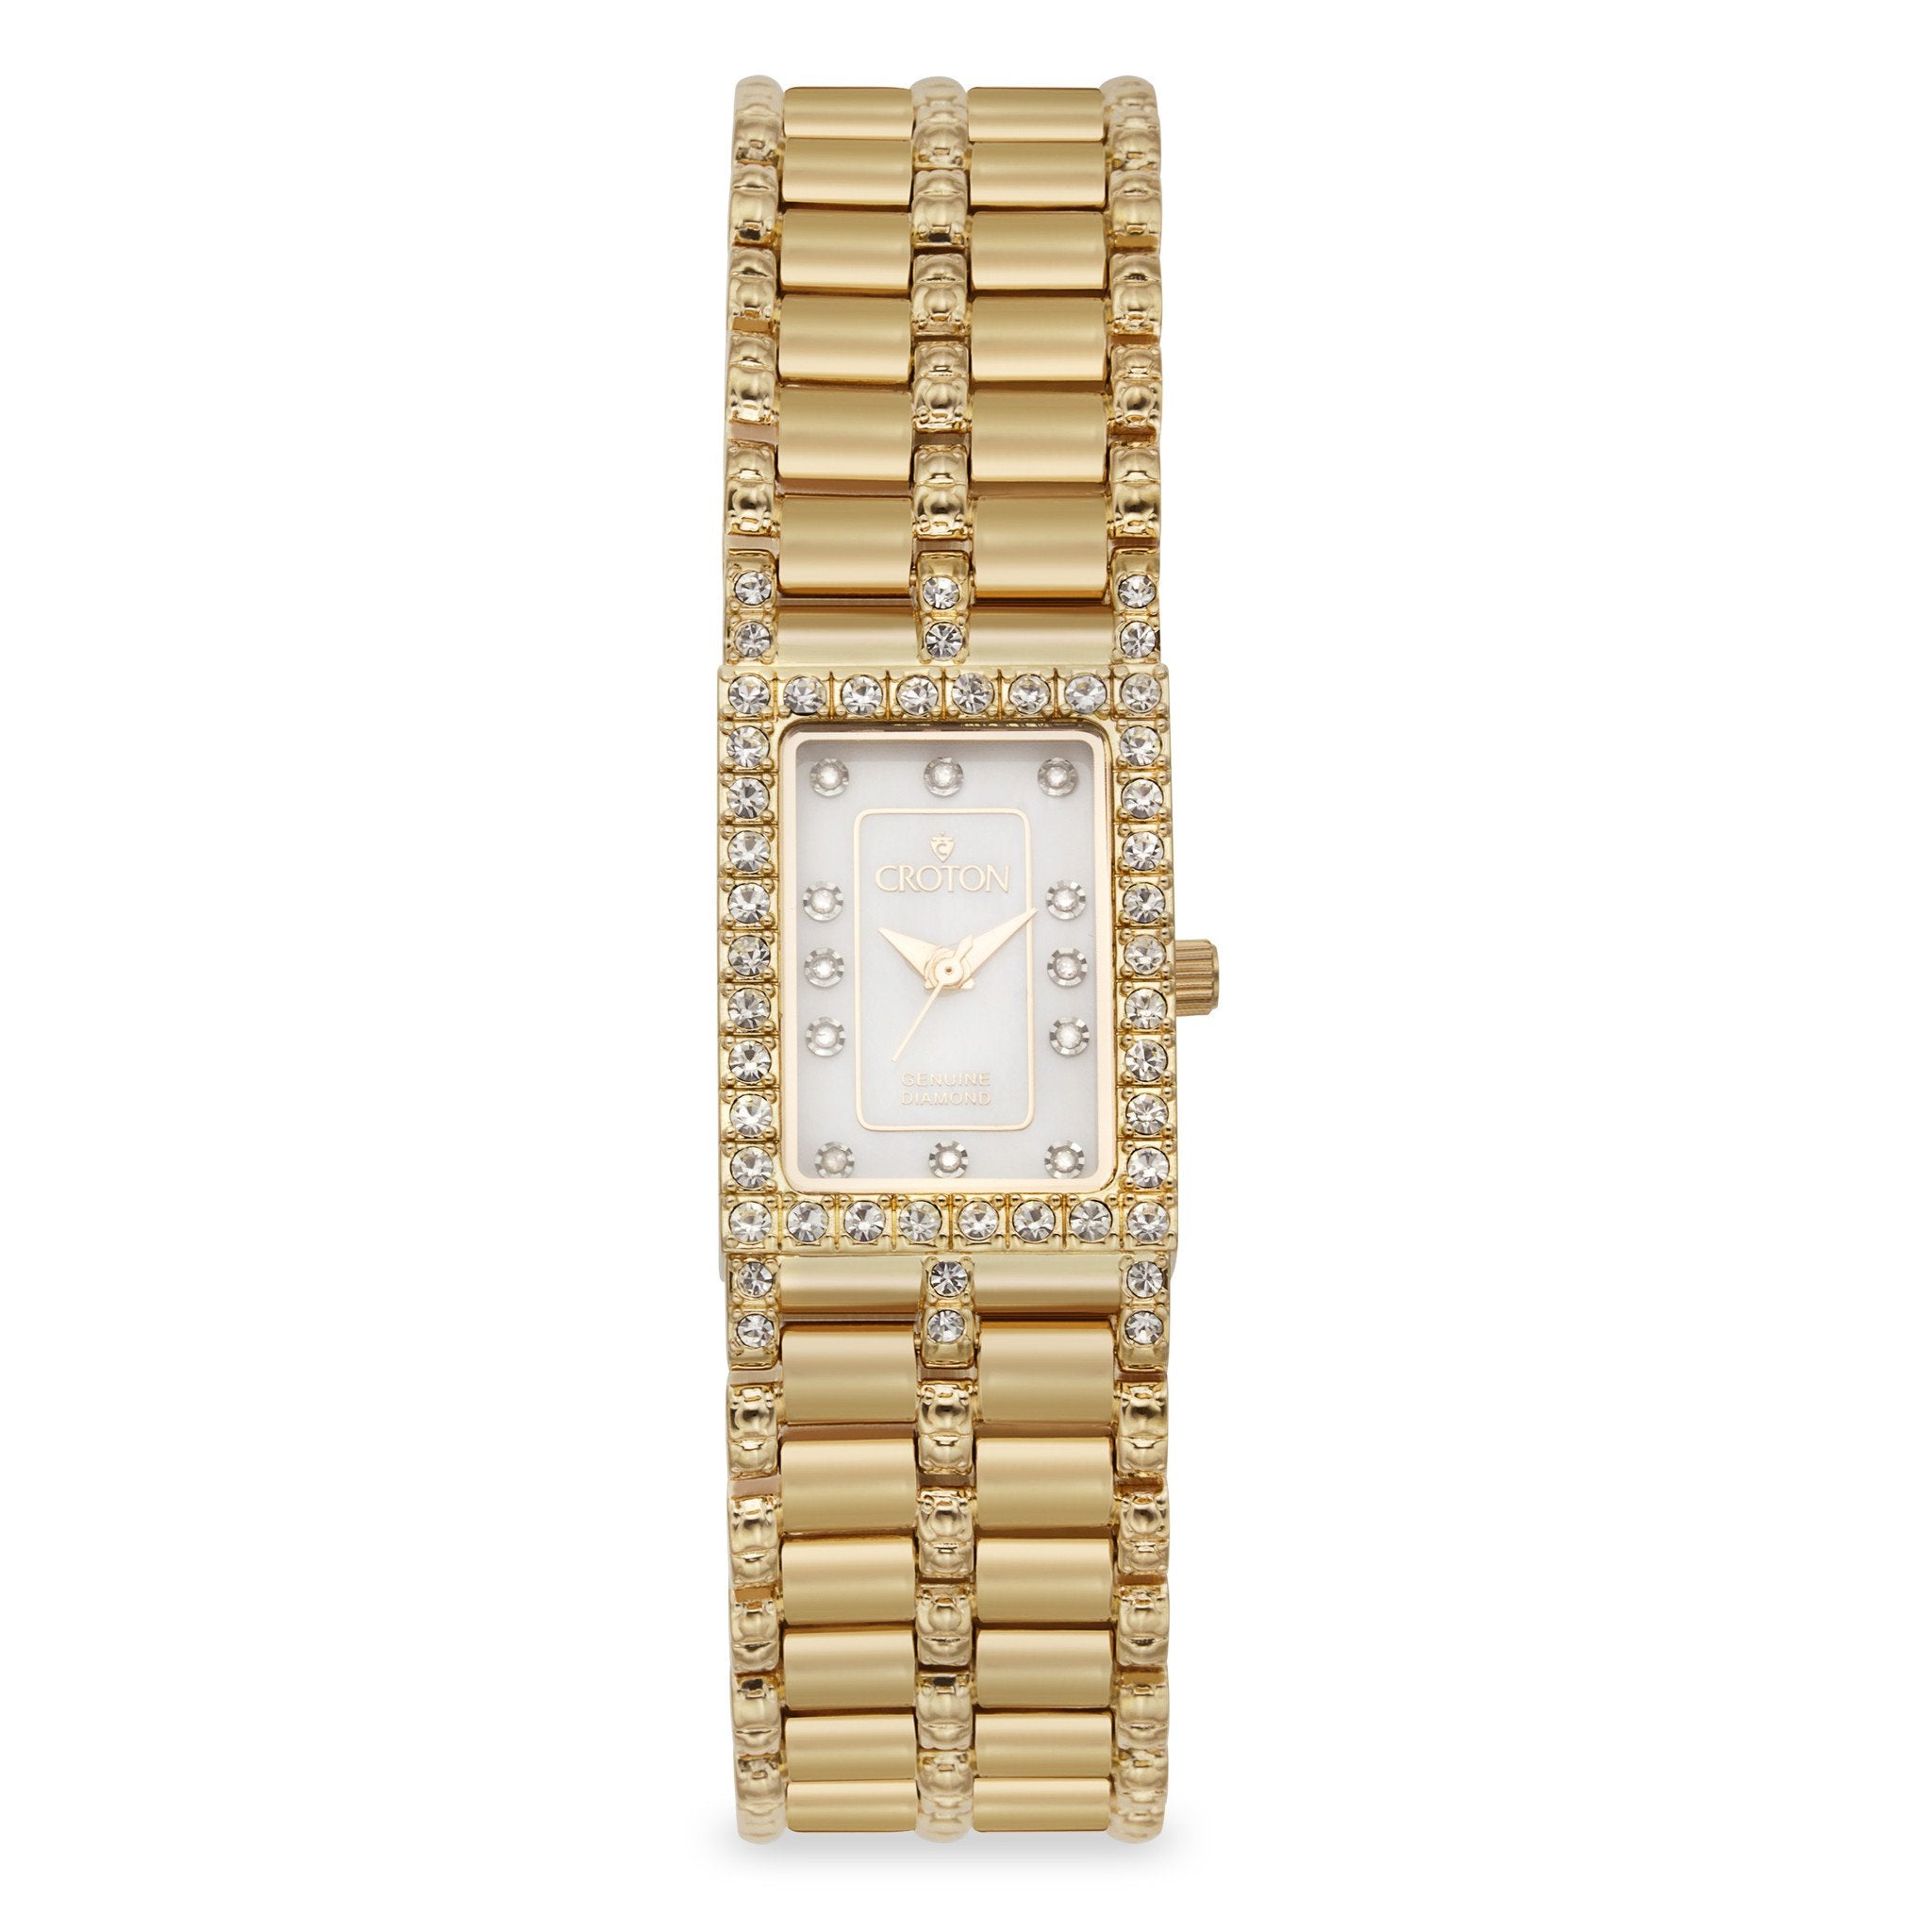 in diamonds shop product the watch editor tank gold crop and upscale white false diamond watches subsampling scale folle zoom jewellery cartier